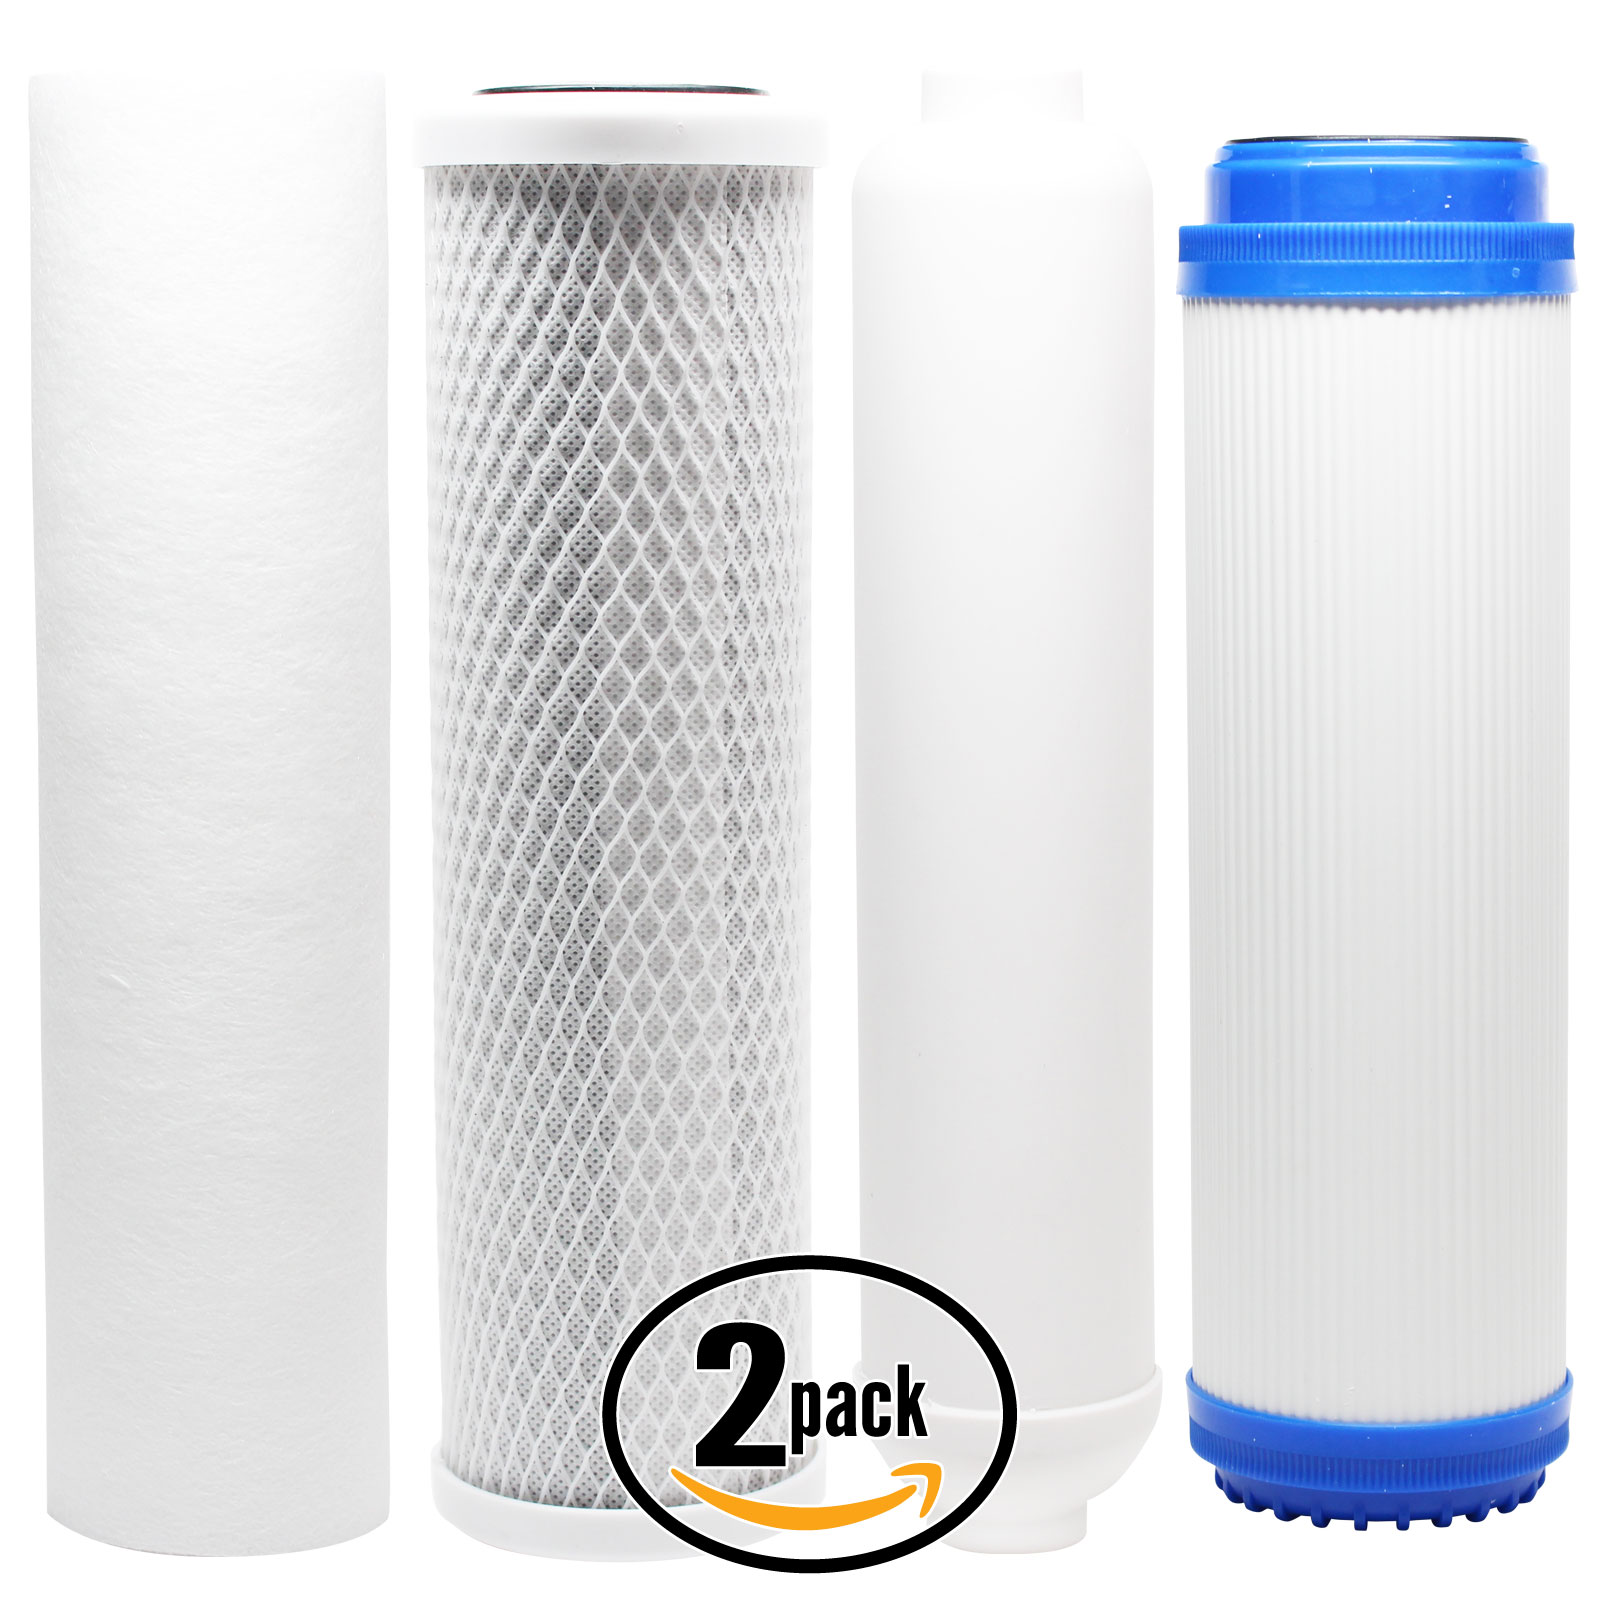 2-Pack Replacement Filter Kit for Topway Global (TGI) TGI-525 RO System - Includes Carbon Block Filter, PP Sediment Filter, GAC Filter & Inline Filter Cartridge - Denali Pure Brand